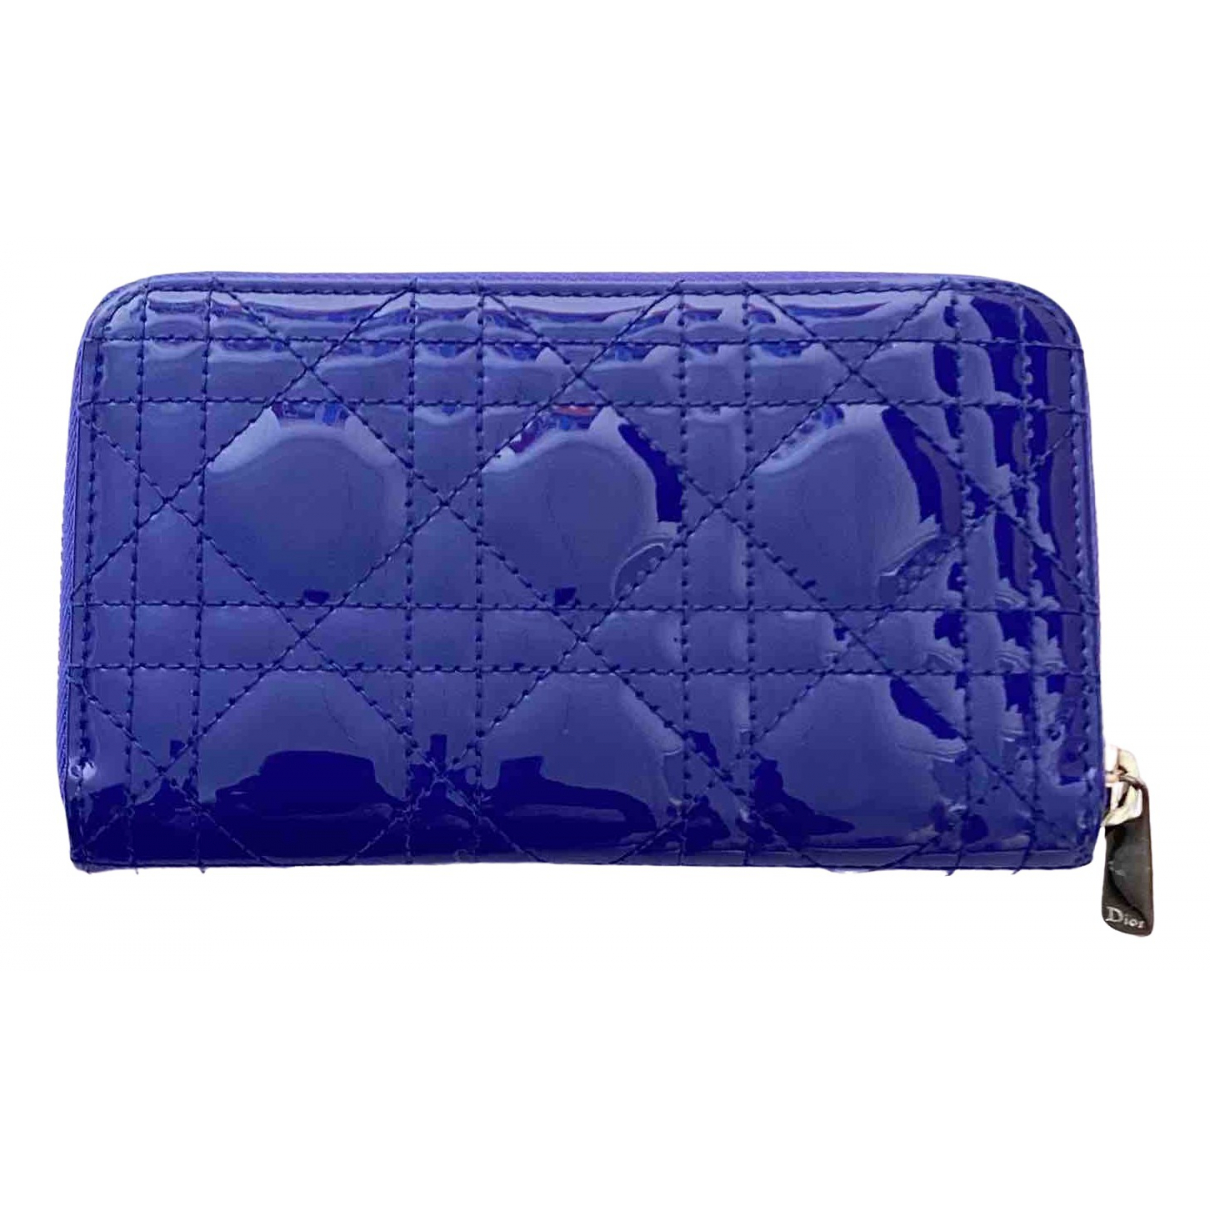 Dior Lady Dior Purple Patent leather wallet for Women \N